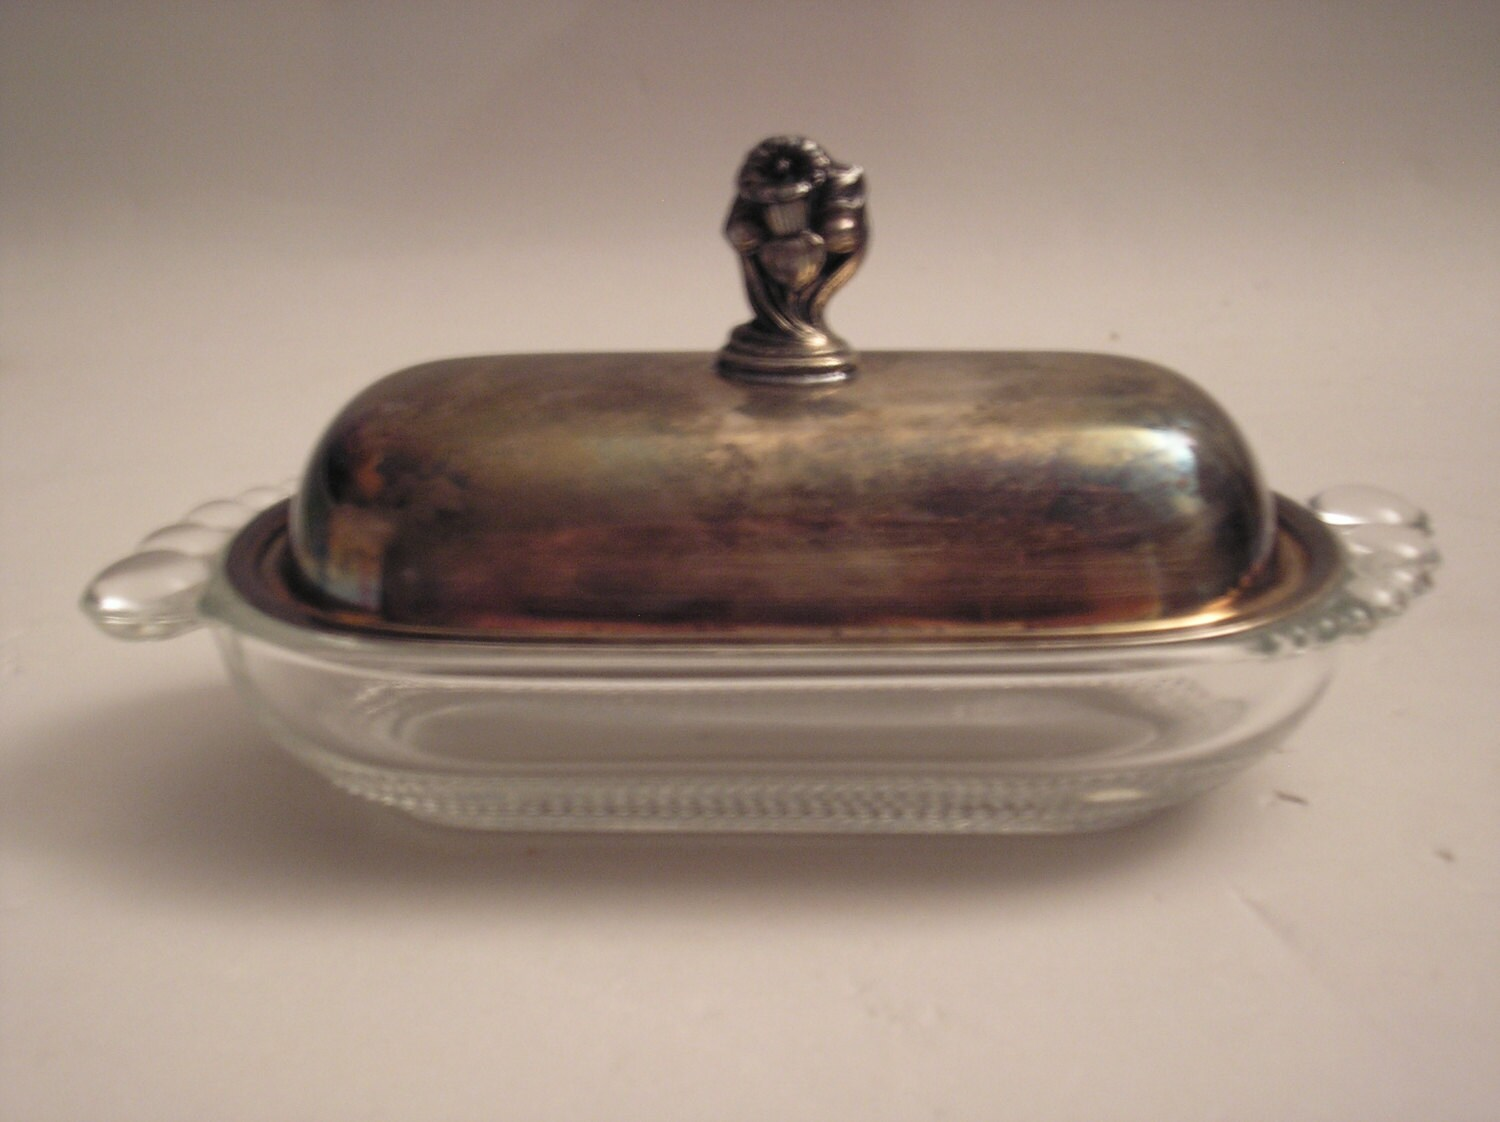 1950 1973 Crystal Butter Dish With Silverplate Lid In The